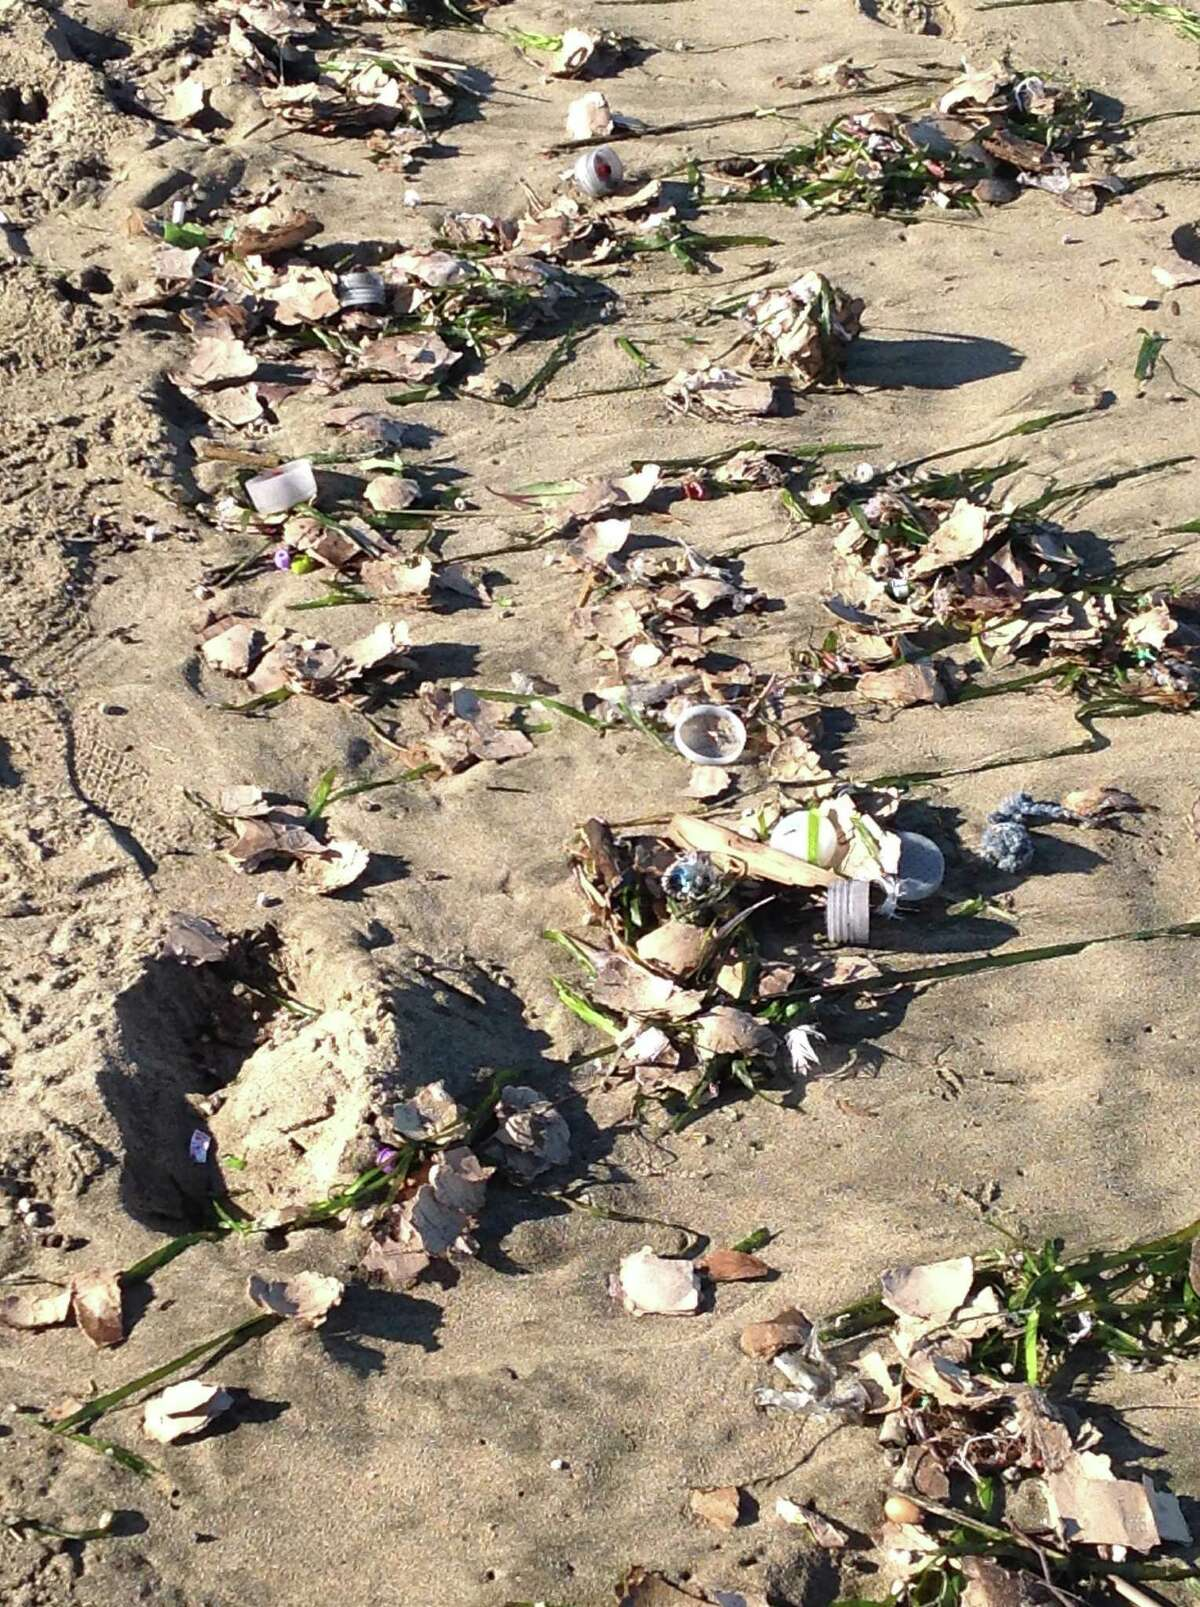 Park officials cleaned up debris that washed ashore Sunday following the Macy's fireworks show.